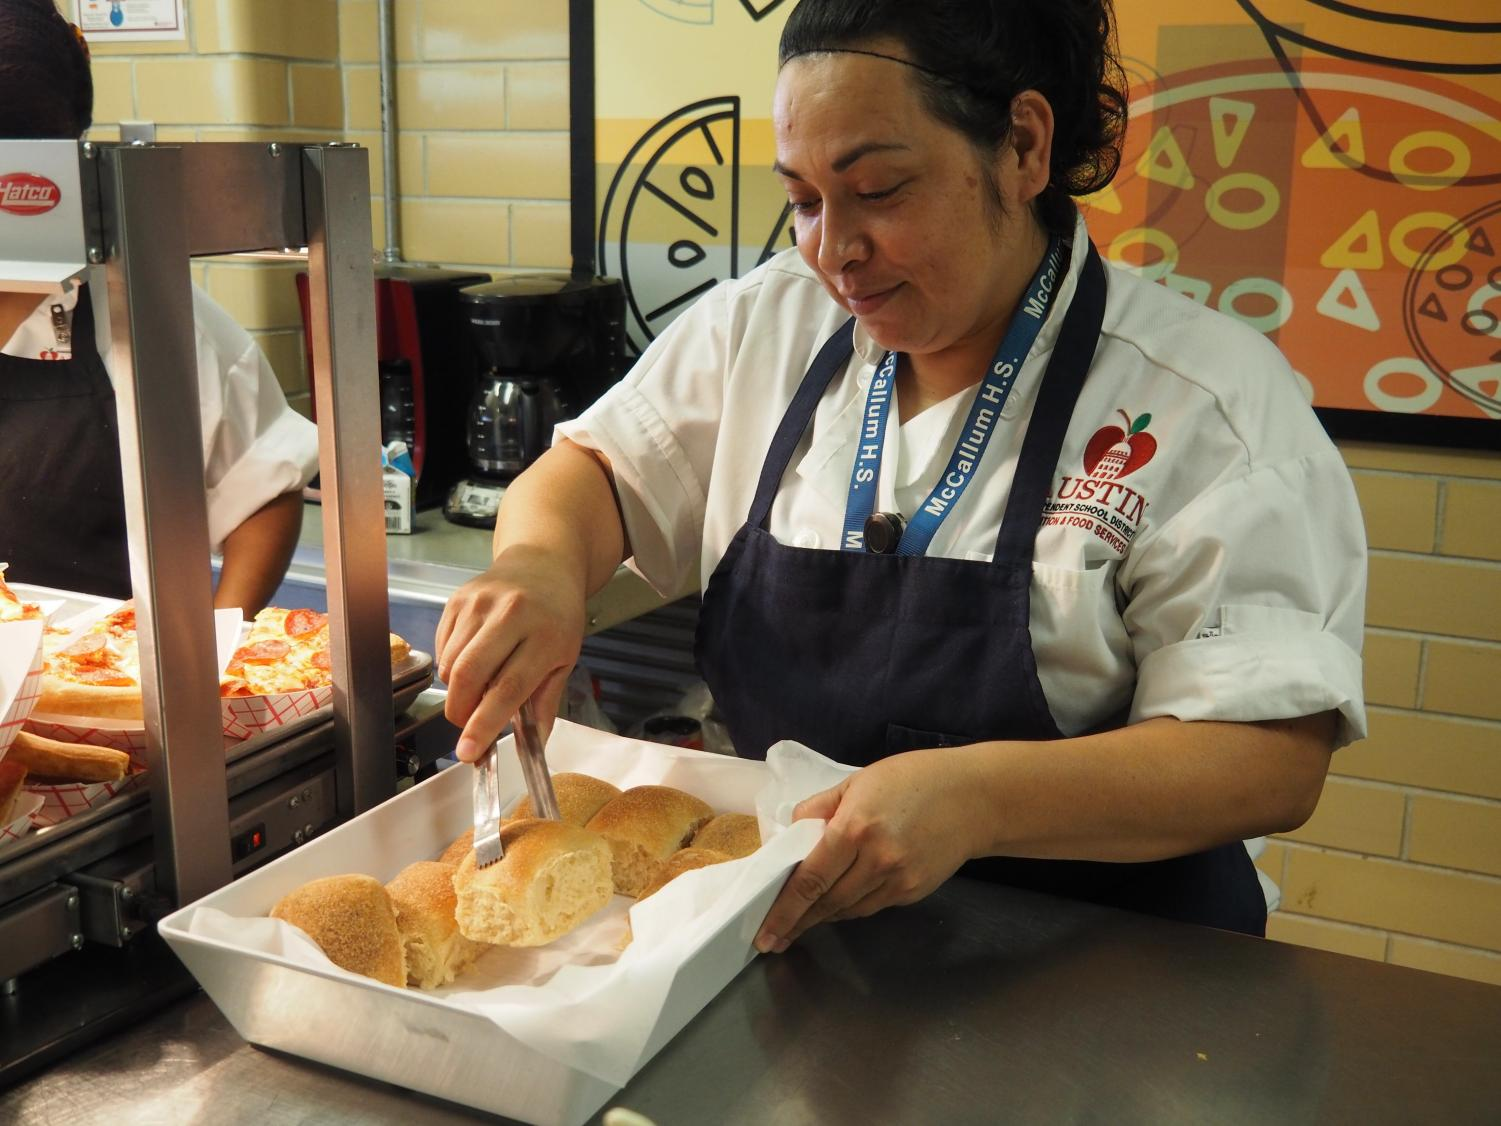 """HOT LUNCH HERO: Ruth Villarreal serves warm bread to students. Villarreal takes pride in her work and is well-known for her kindness in the lunch line. """"My favorite part of my job is serving to the future,"""" Villarreal said. """"You are my future."""" Photo by Lucy Marco."""